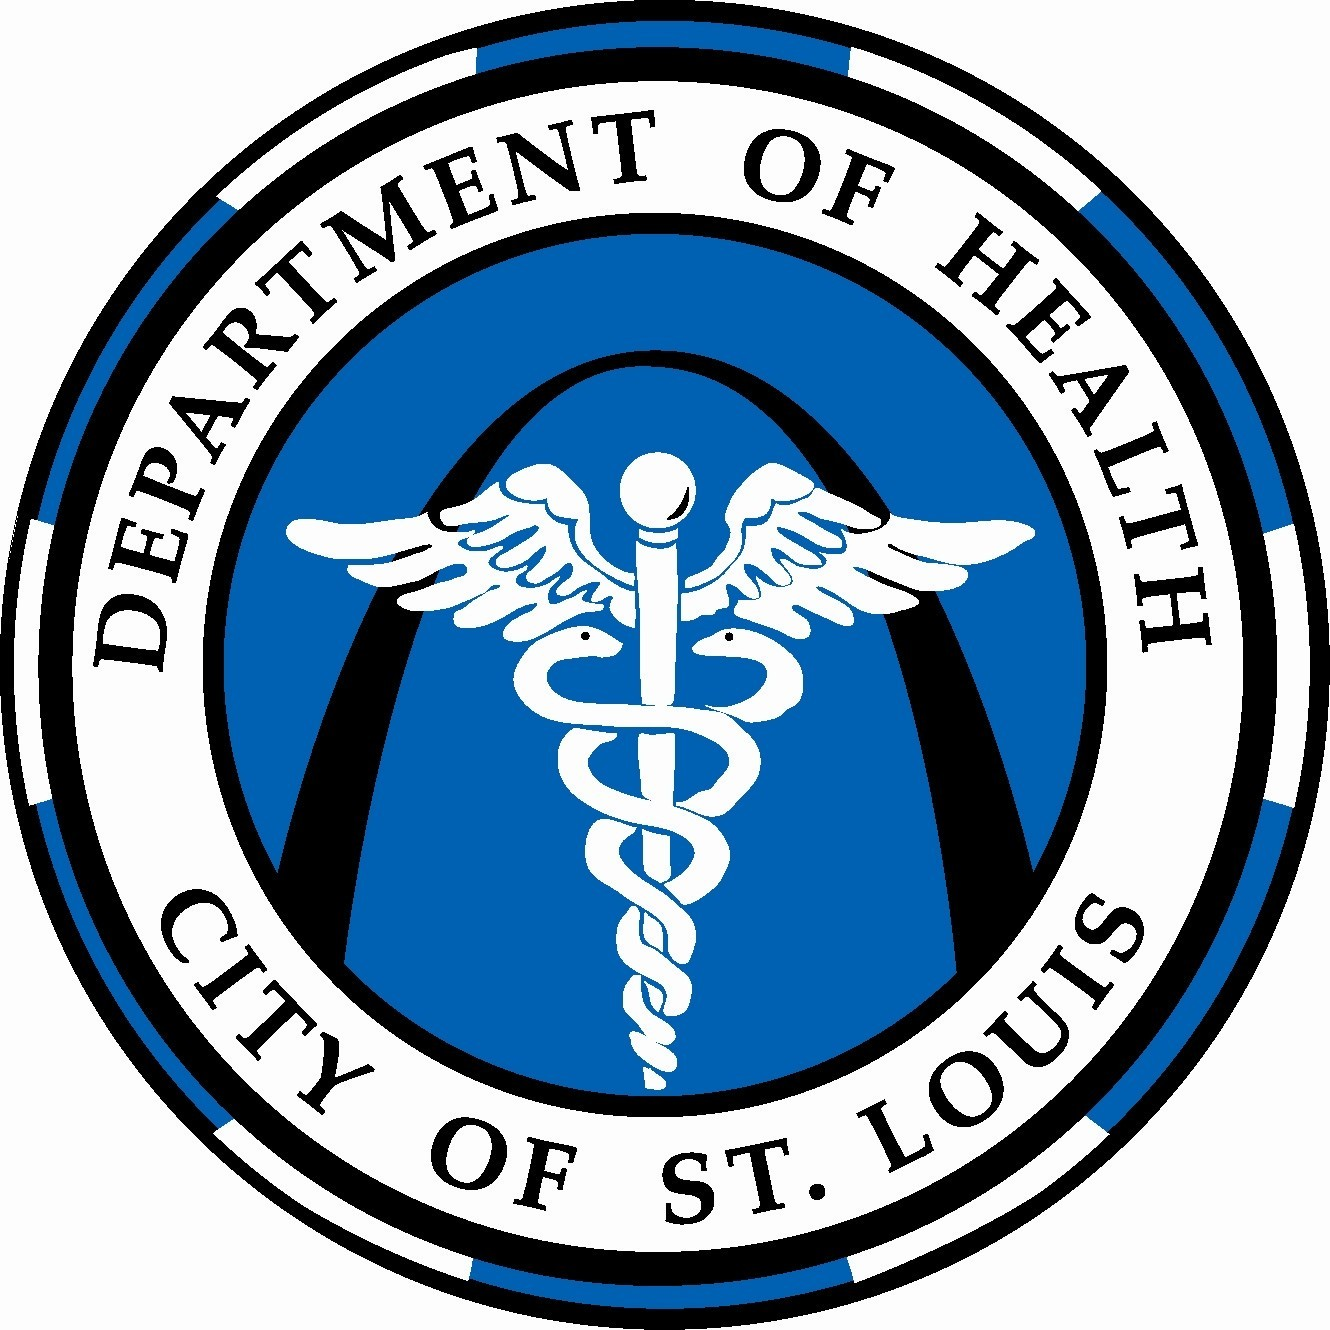 logo for City Department of Health